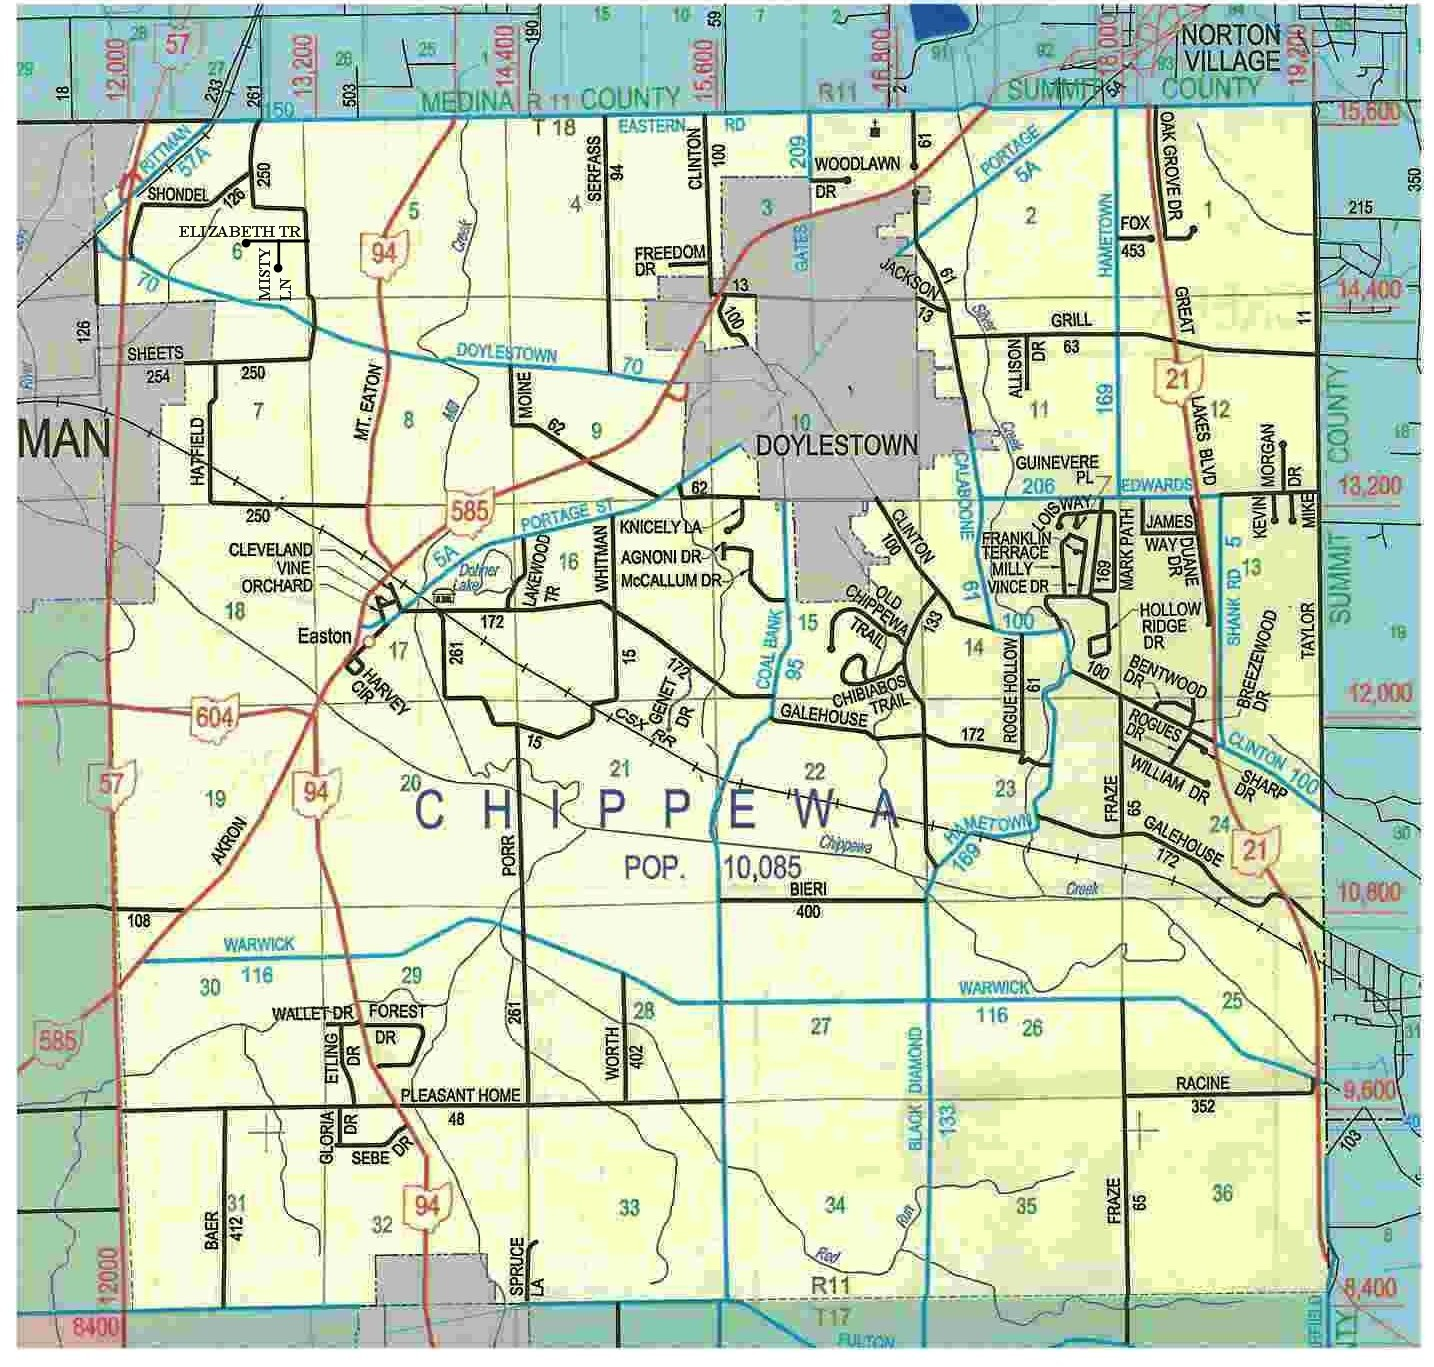 Chippewa Township | Small enough to know you, Large enough ... on holmes county, summit county, union county, map of holmes county ohio, map of summit county ohio, map of milton township ohio, cuyahoga county, putnam county, map of western hills ohio, washington county, map of waynesboro ohio, map of new york ohio, stark county, map of fairport ohio, map of washington county ohio, map of tuscarawas county ohio, lake county, map of west branch ohio, map of ashland county ohio, map of lebanon county ohio, portage county, map of fredericksburg ohio, richland county, lorain county, map of trumbull county ohio, map of ross county ohio, marion county, carroll county, map of new boston ohio, map of van wert county ohio, trumbull county, medina county, map of stark county ohio, map of rittman ohio, tuscarawas county, map of collinwood ohio,